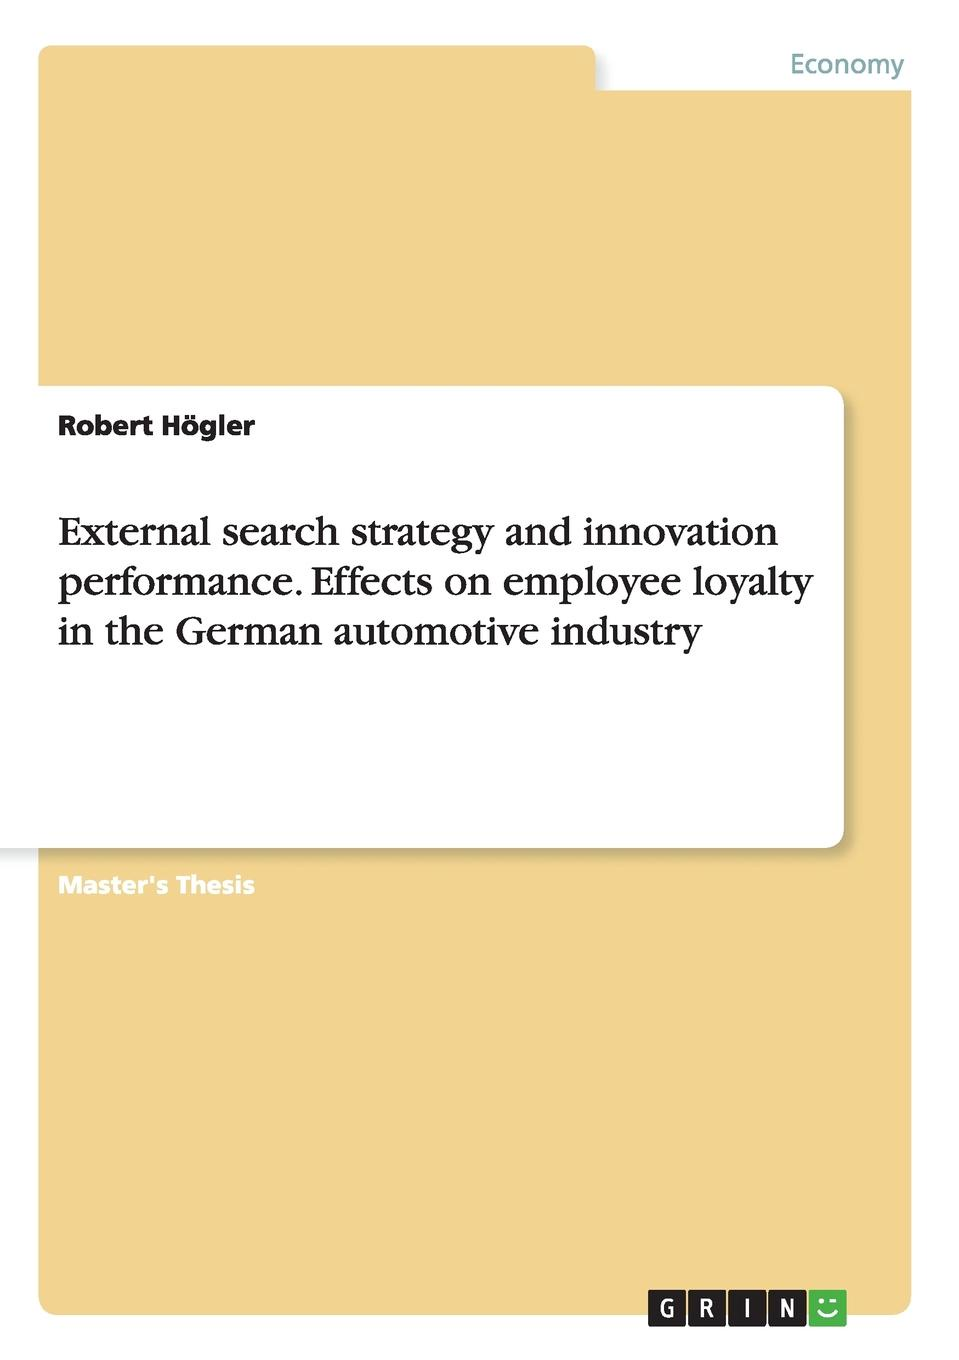 Robert Högler External search strategy and innovation performance. Effects on employee loyalty in the German automotive industry knowledge and innovation dilemmas